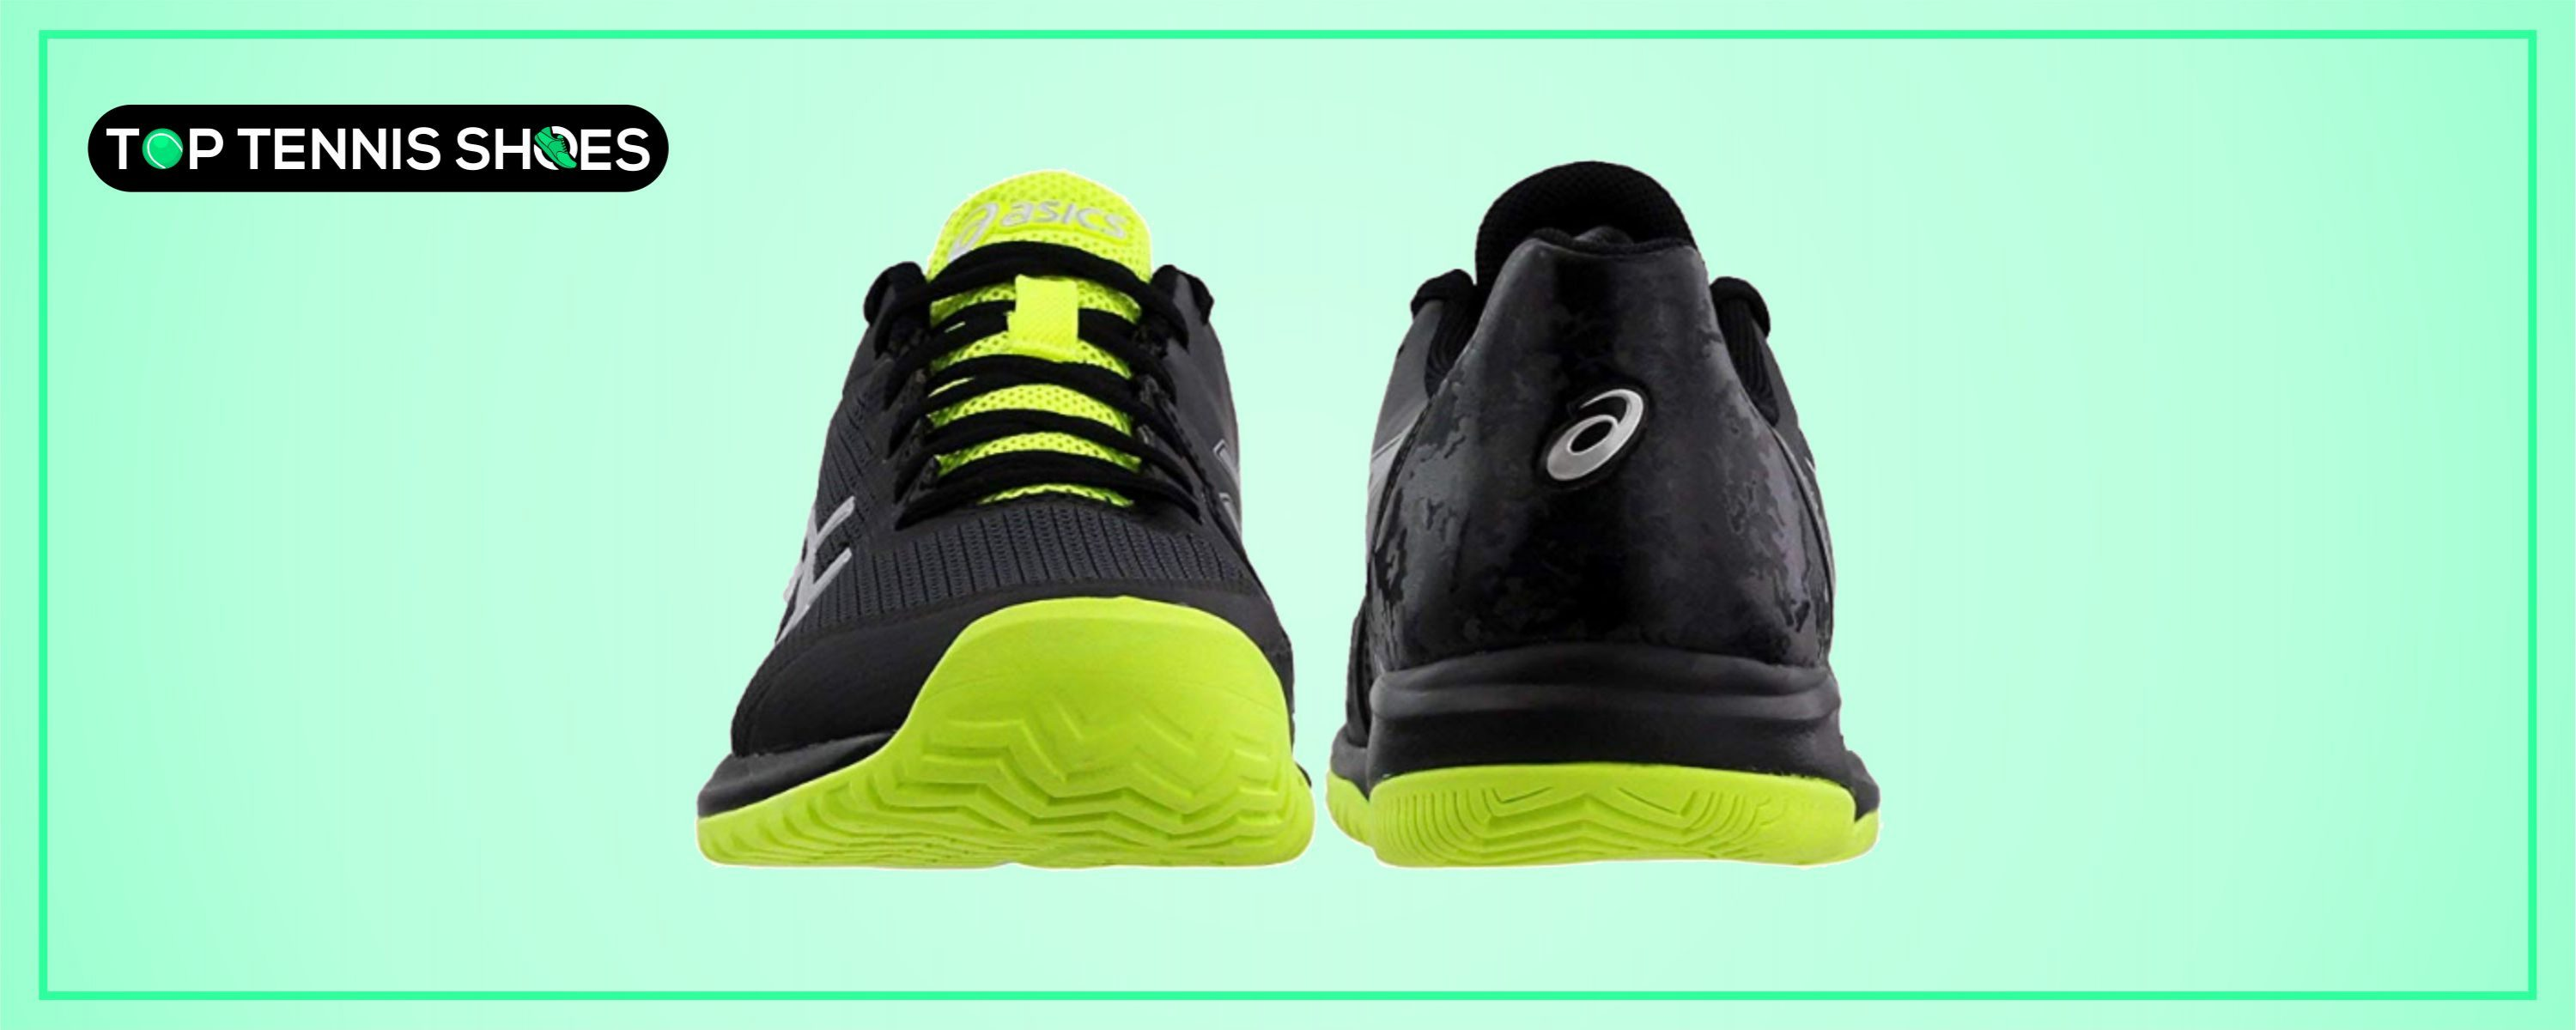 Affordable Tennis Sneakers